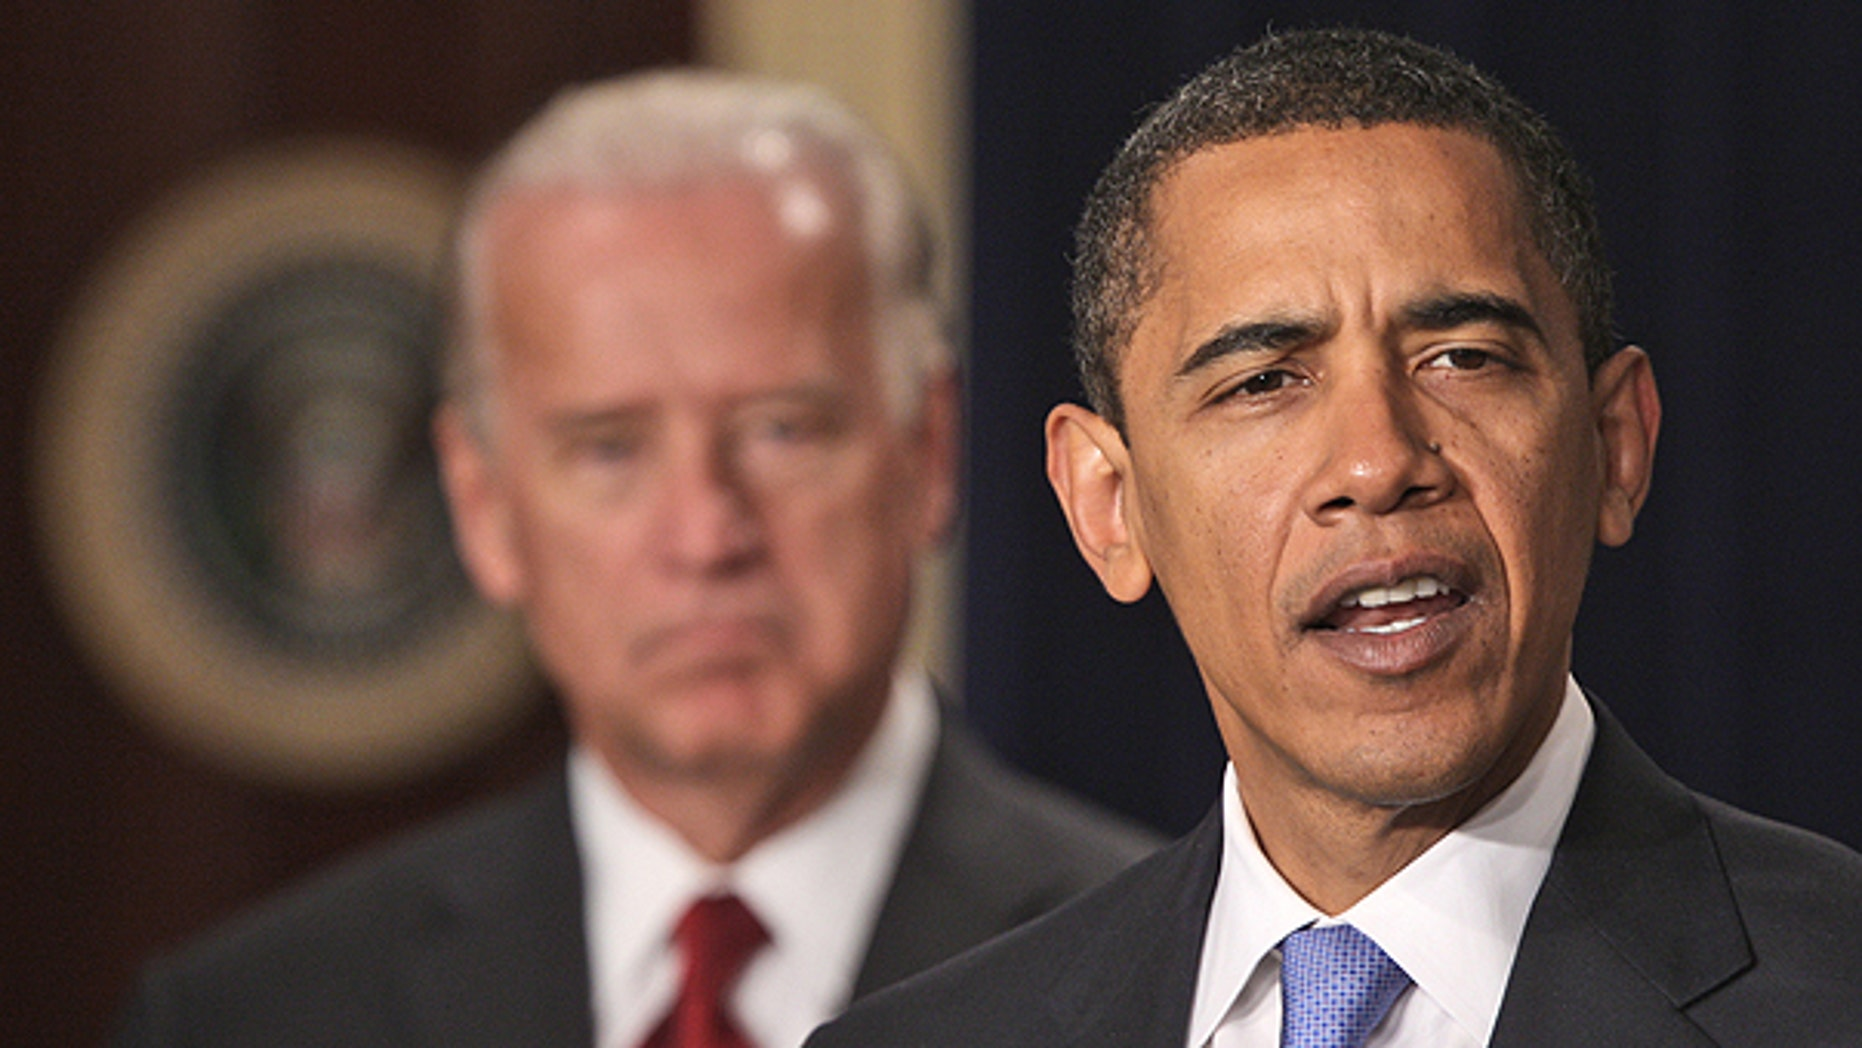 In this Jan. 21, 2009 file photo, President Barack Obama, accompanied by Vice President Joe Biden speaks in the Eisenhower Executive Office Building in Washington.